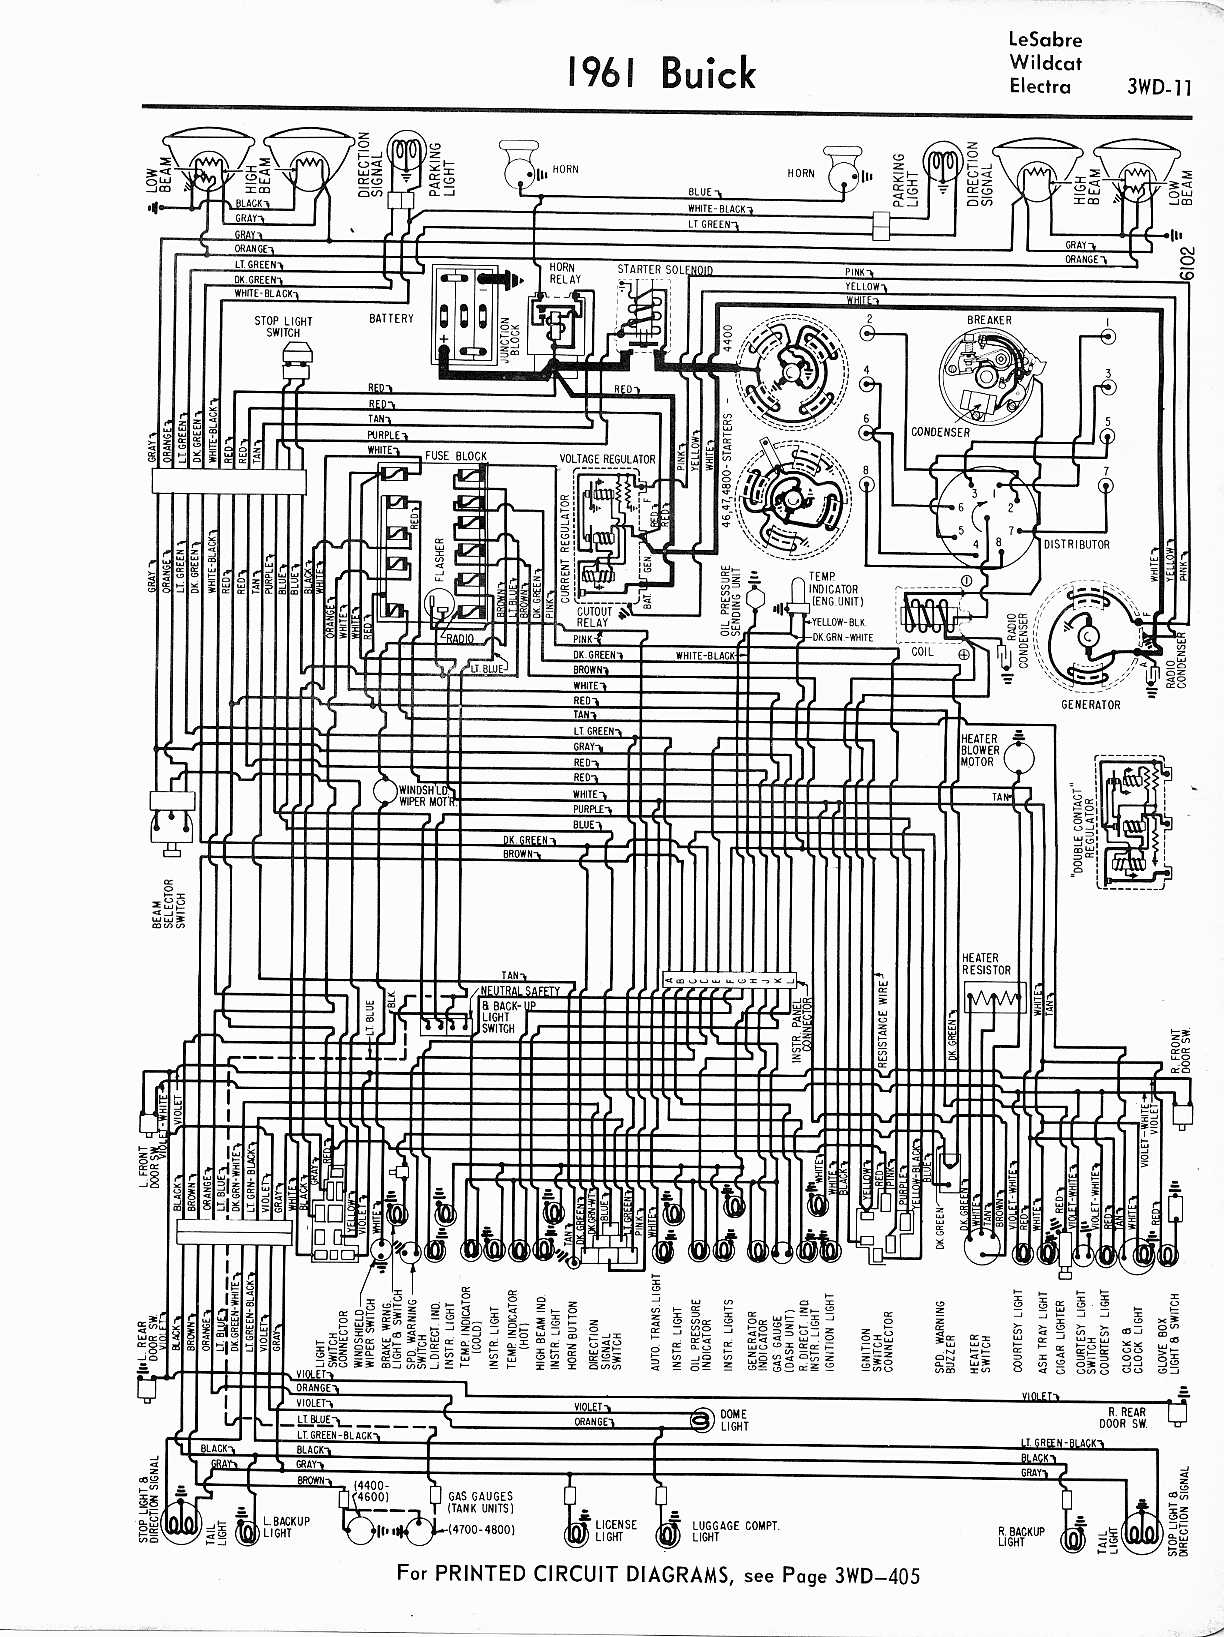 Fuse Box 98 Buick Regal Wiring Library Lesabre Diagram Diagrams 1957 1965 1998 Vehicle Electra